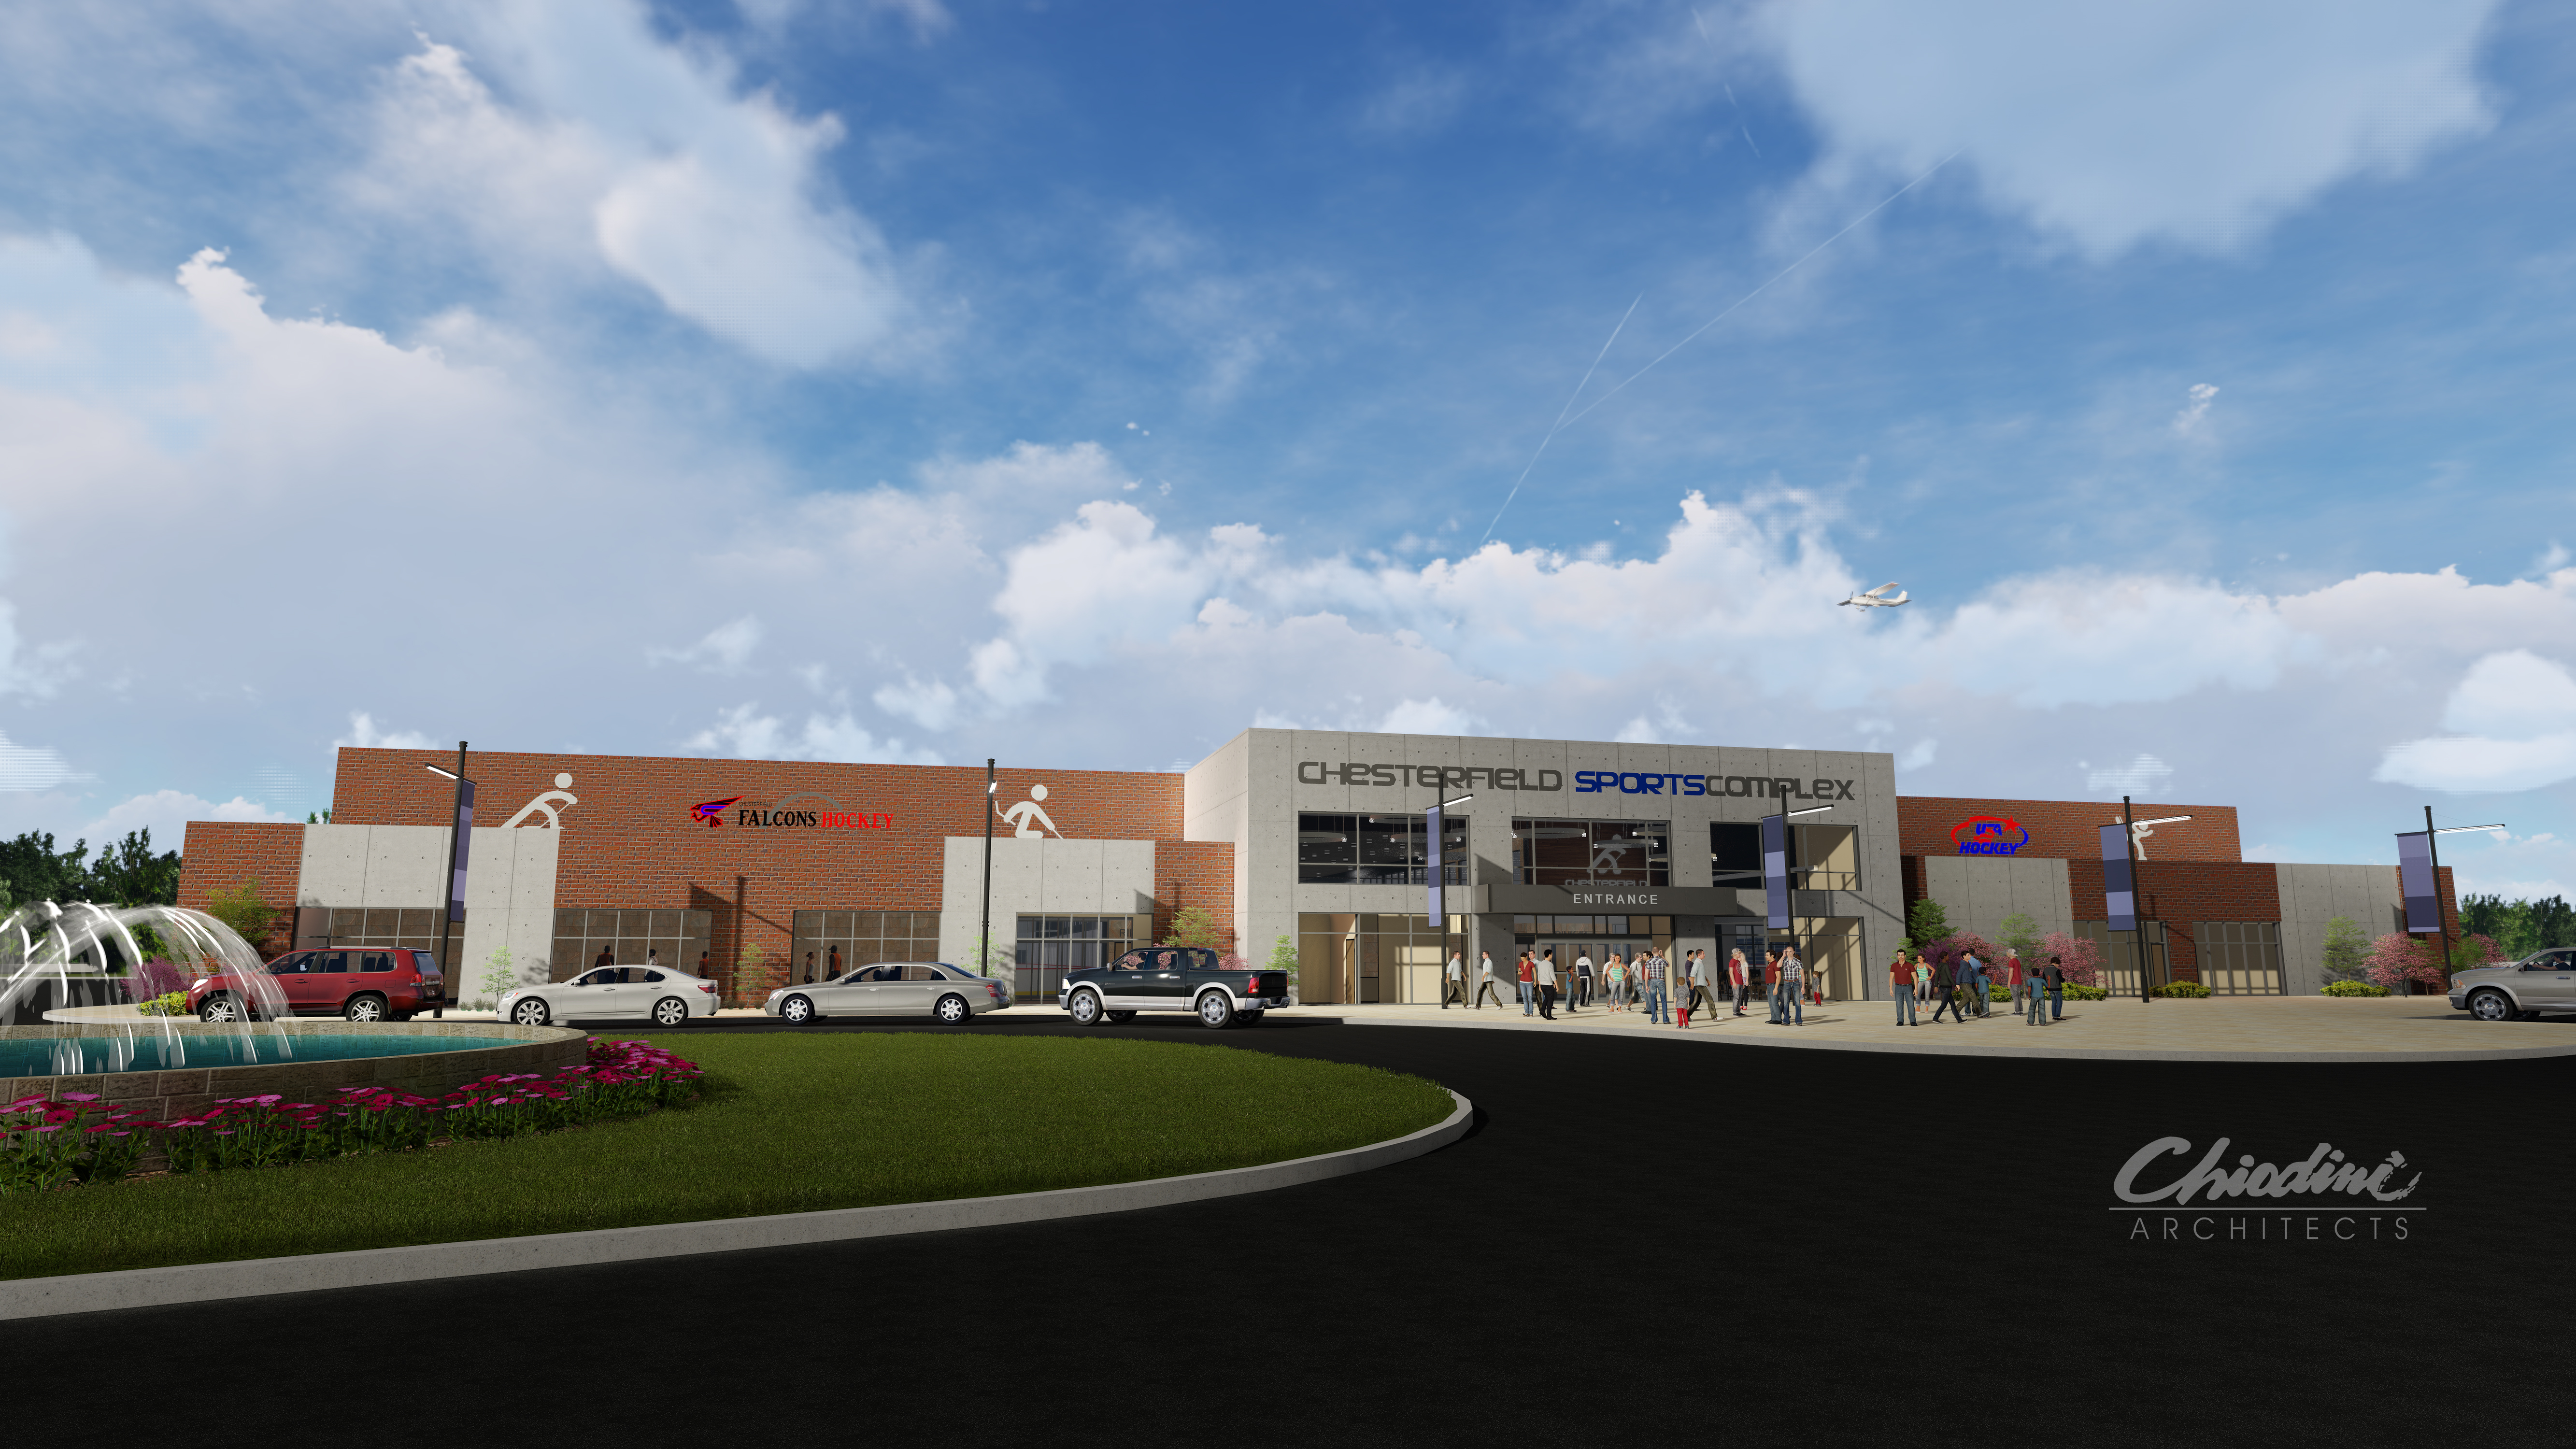 78,000 SF Multi-Sport Complex Proposed for Chesterfield Valley